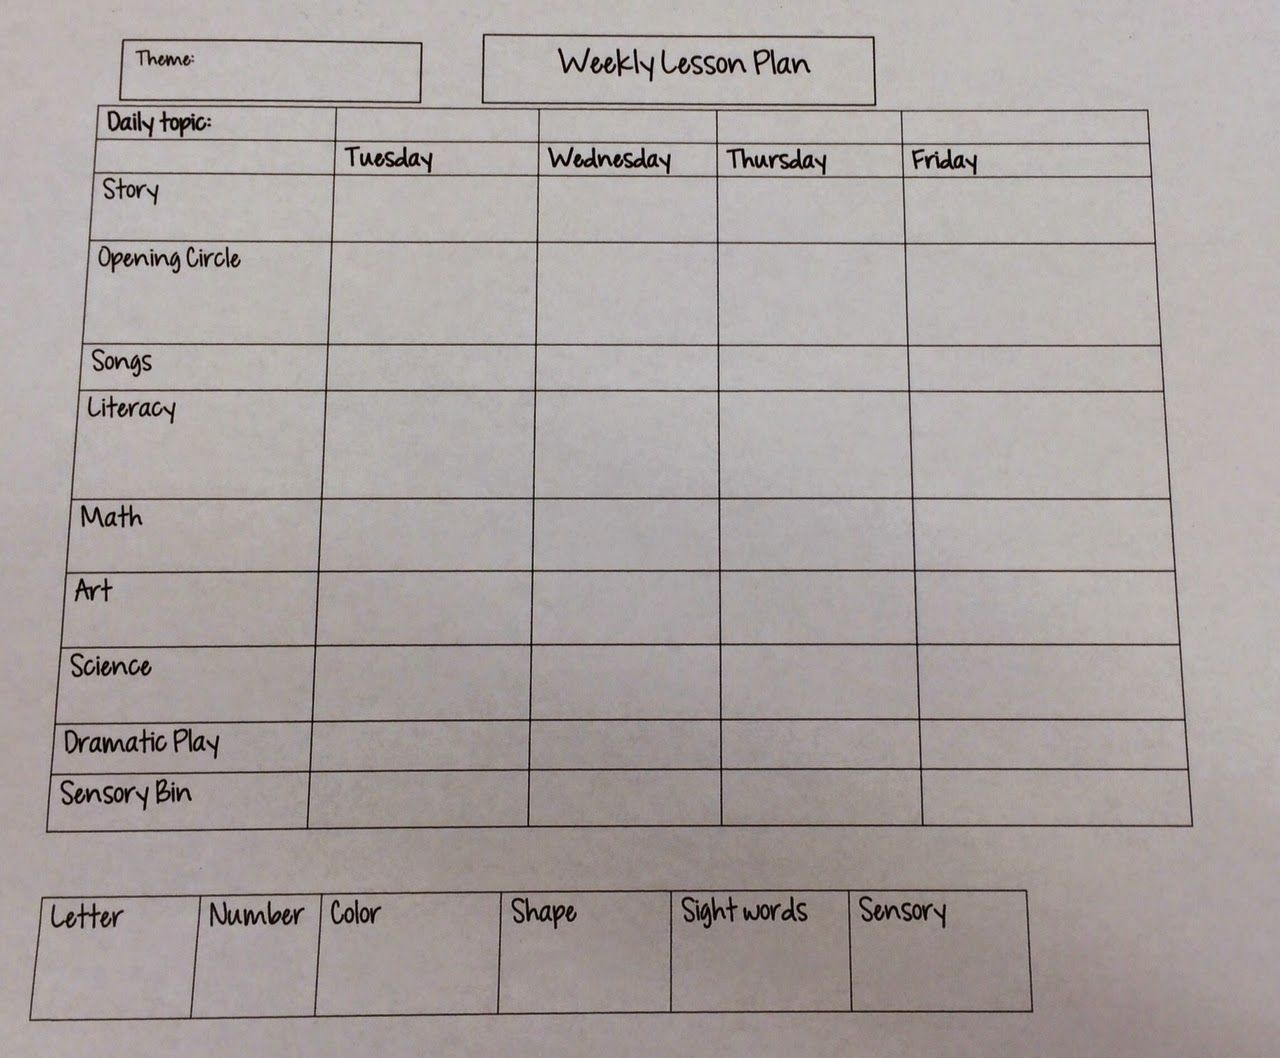 Here Is A Lesson Plan Template That I Created For The Upcoming